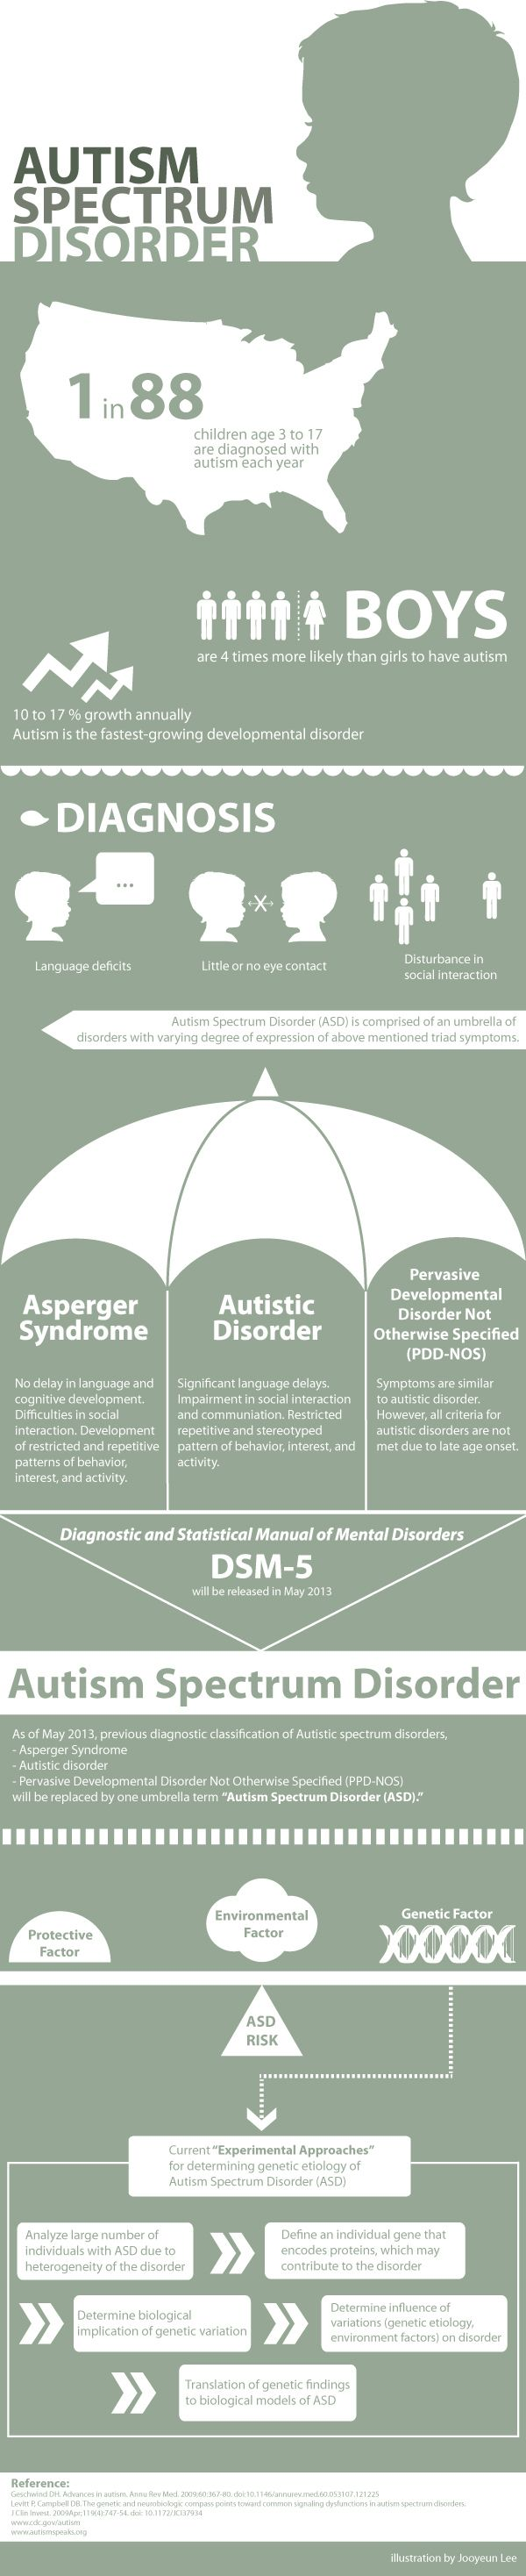 A great info-graphic for autism awareness from CARD (Center for Autism and Related Disorders)